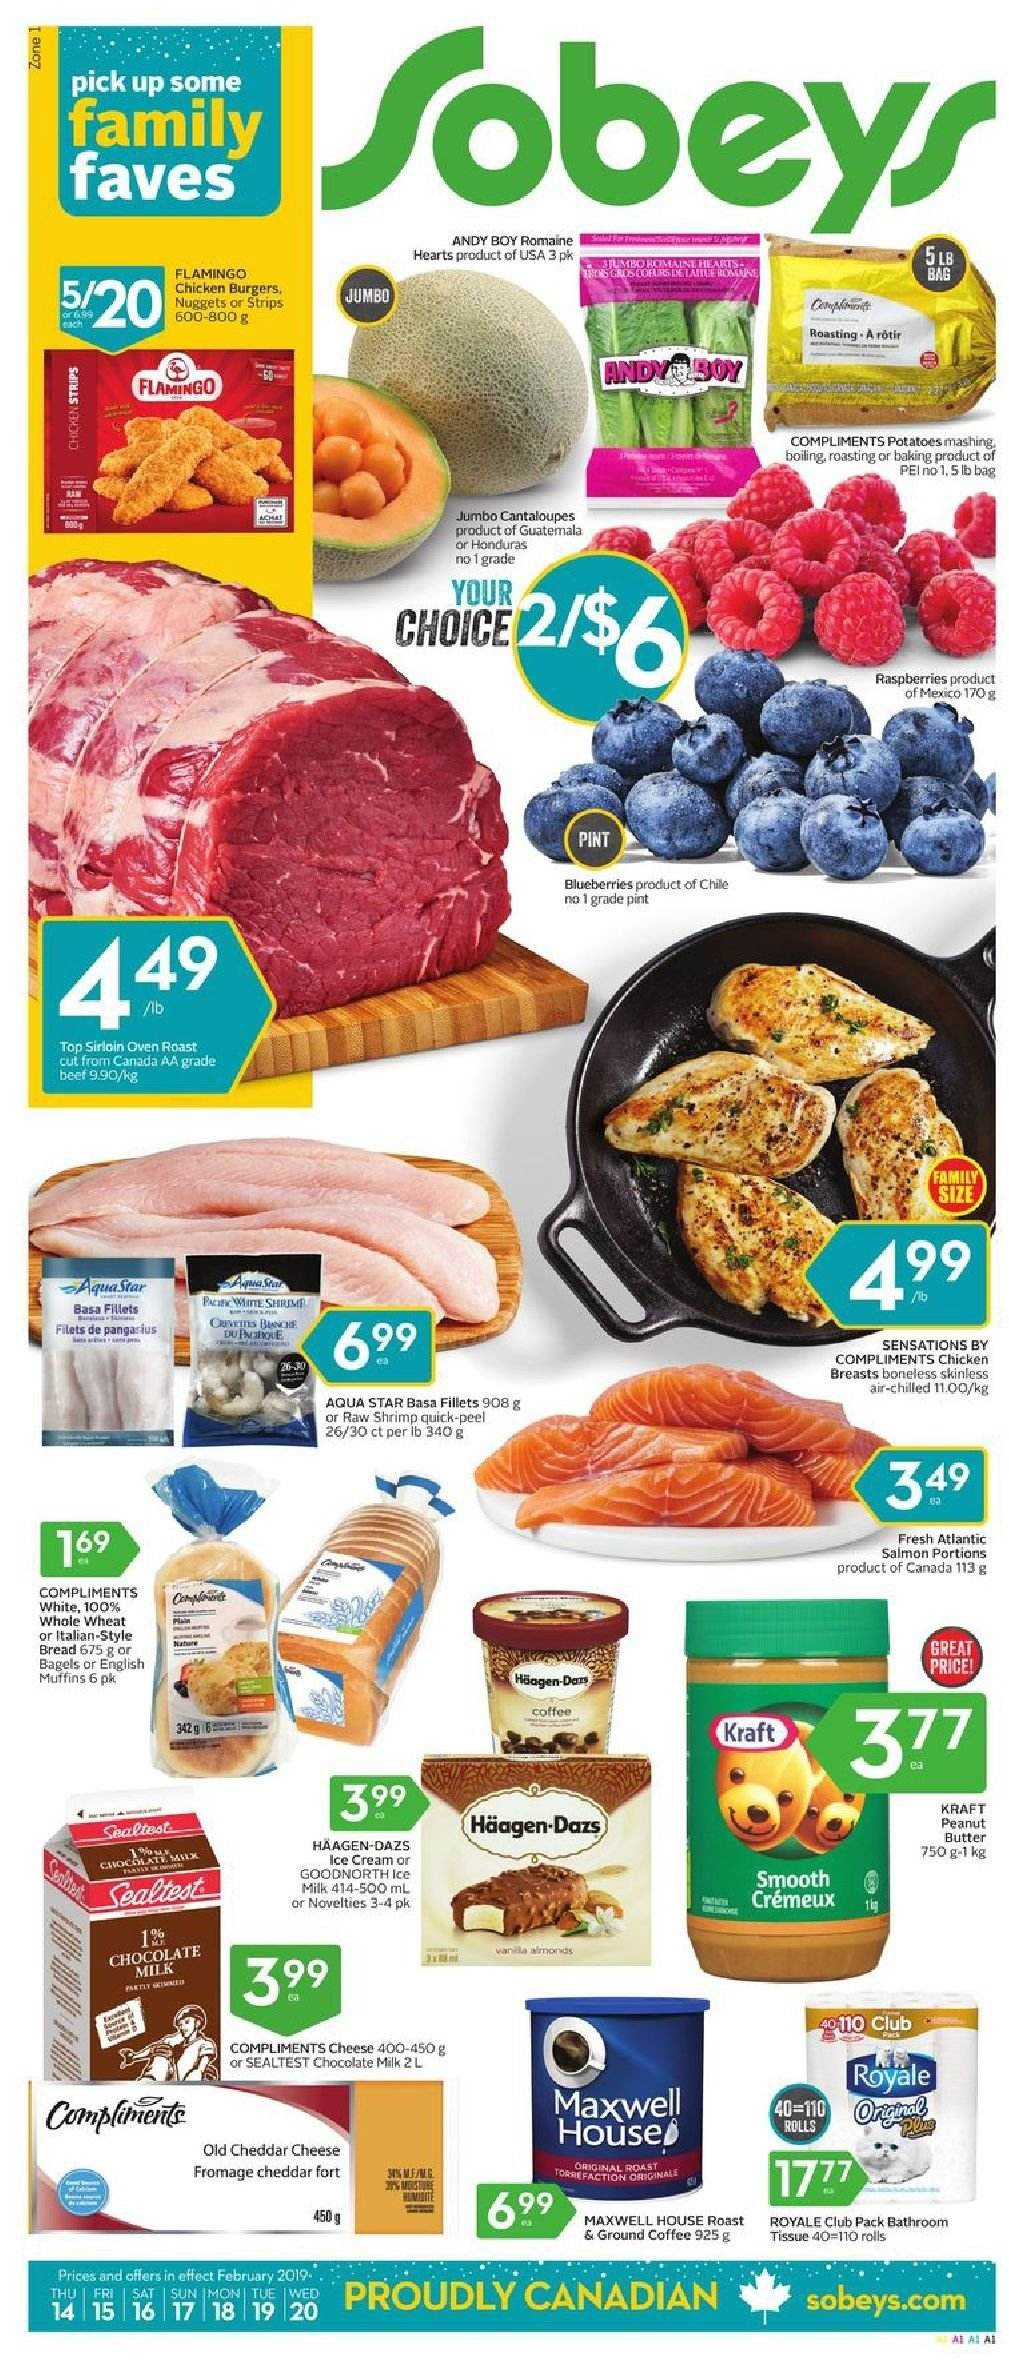 Sobeys Flyer - February 14, 2019 - February 20, 2019 - Sales products - almonds, bag, bagels, beef meat, blueberries, bread, butter, cantaloupe, coffee, cream, english muffins, flamingo, maxwell house, milk, muffins, raspberries, salmon, shrimp, ice cream, potatoes, cheddar, chicken, chicken breast, peanut butter, peanuts, oven, chocolate milk, chocolate, cheese, nuggets, smooth, fromage. Page 1.